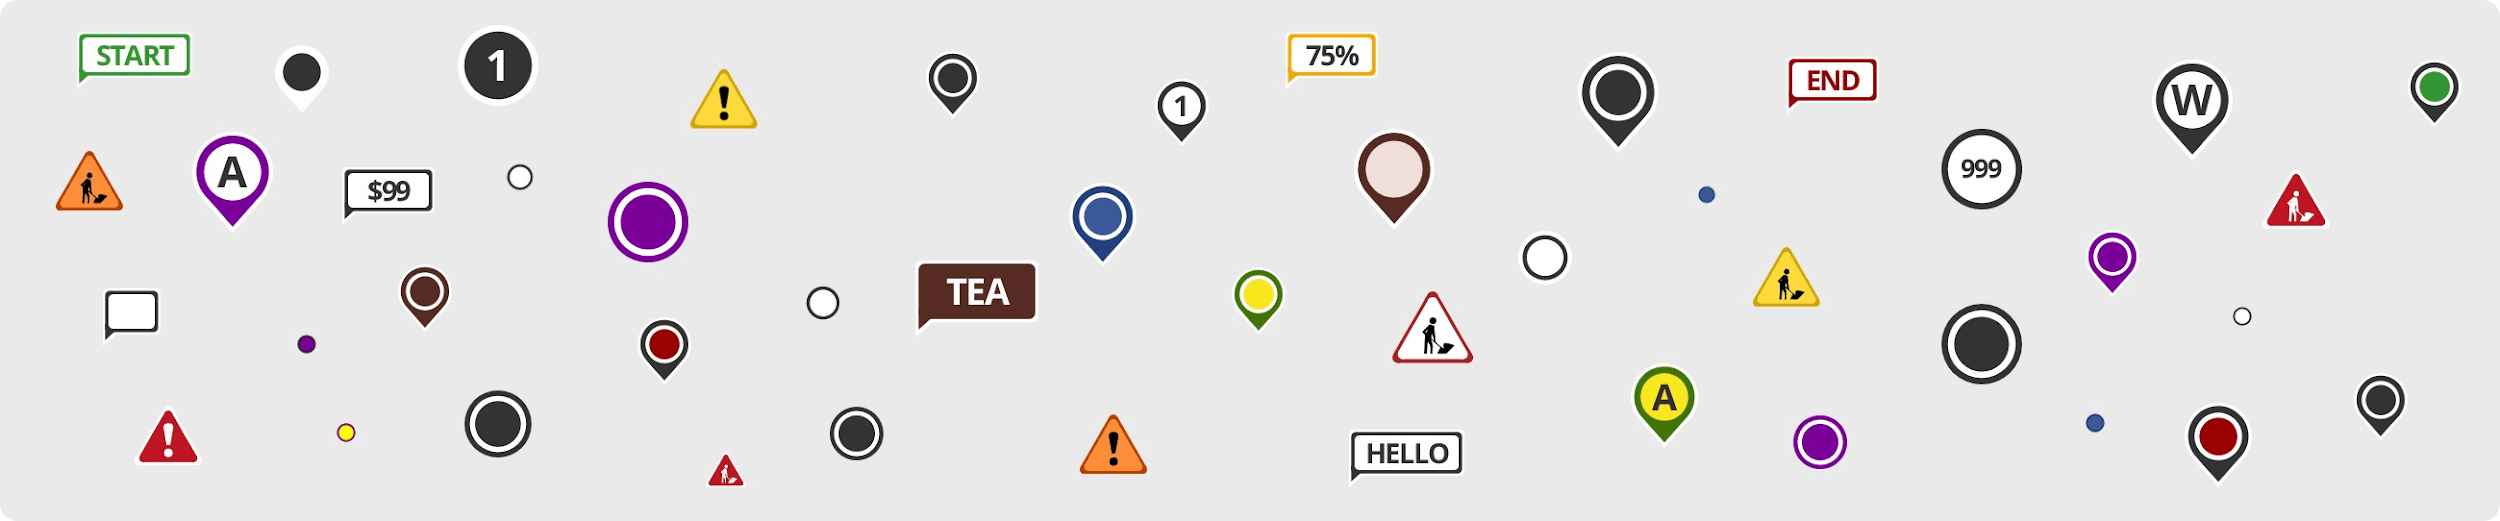 MapQuest icons